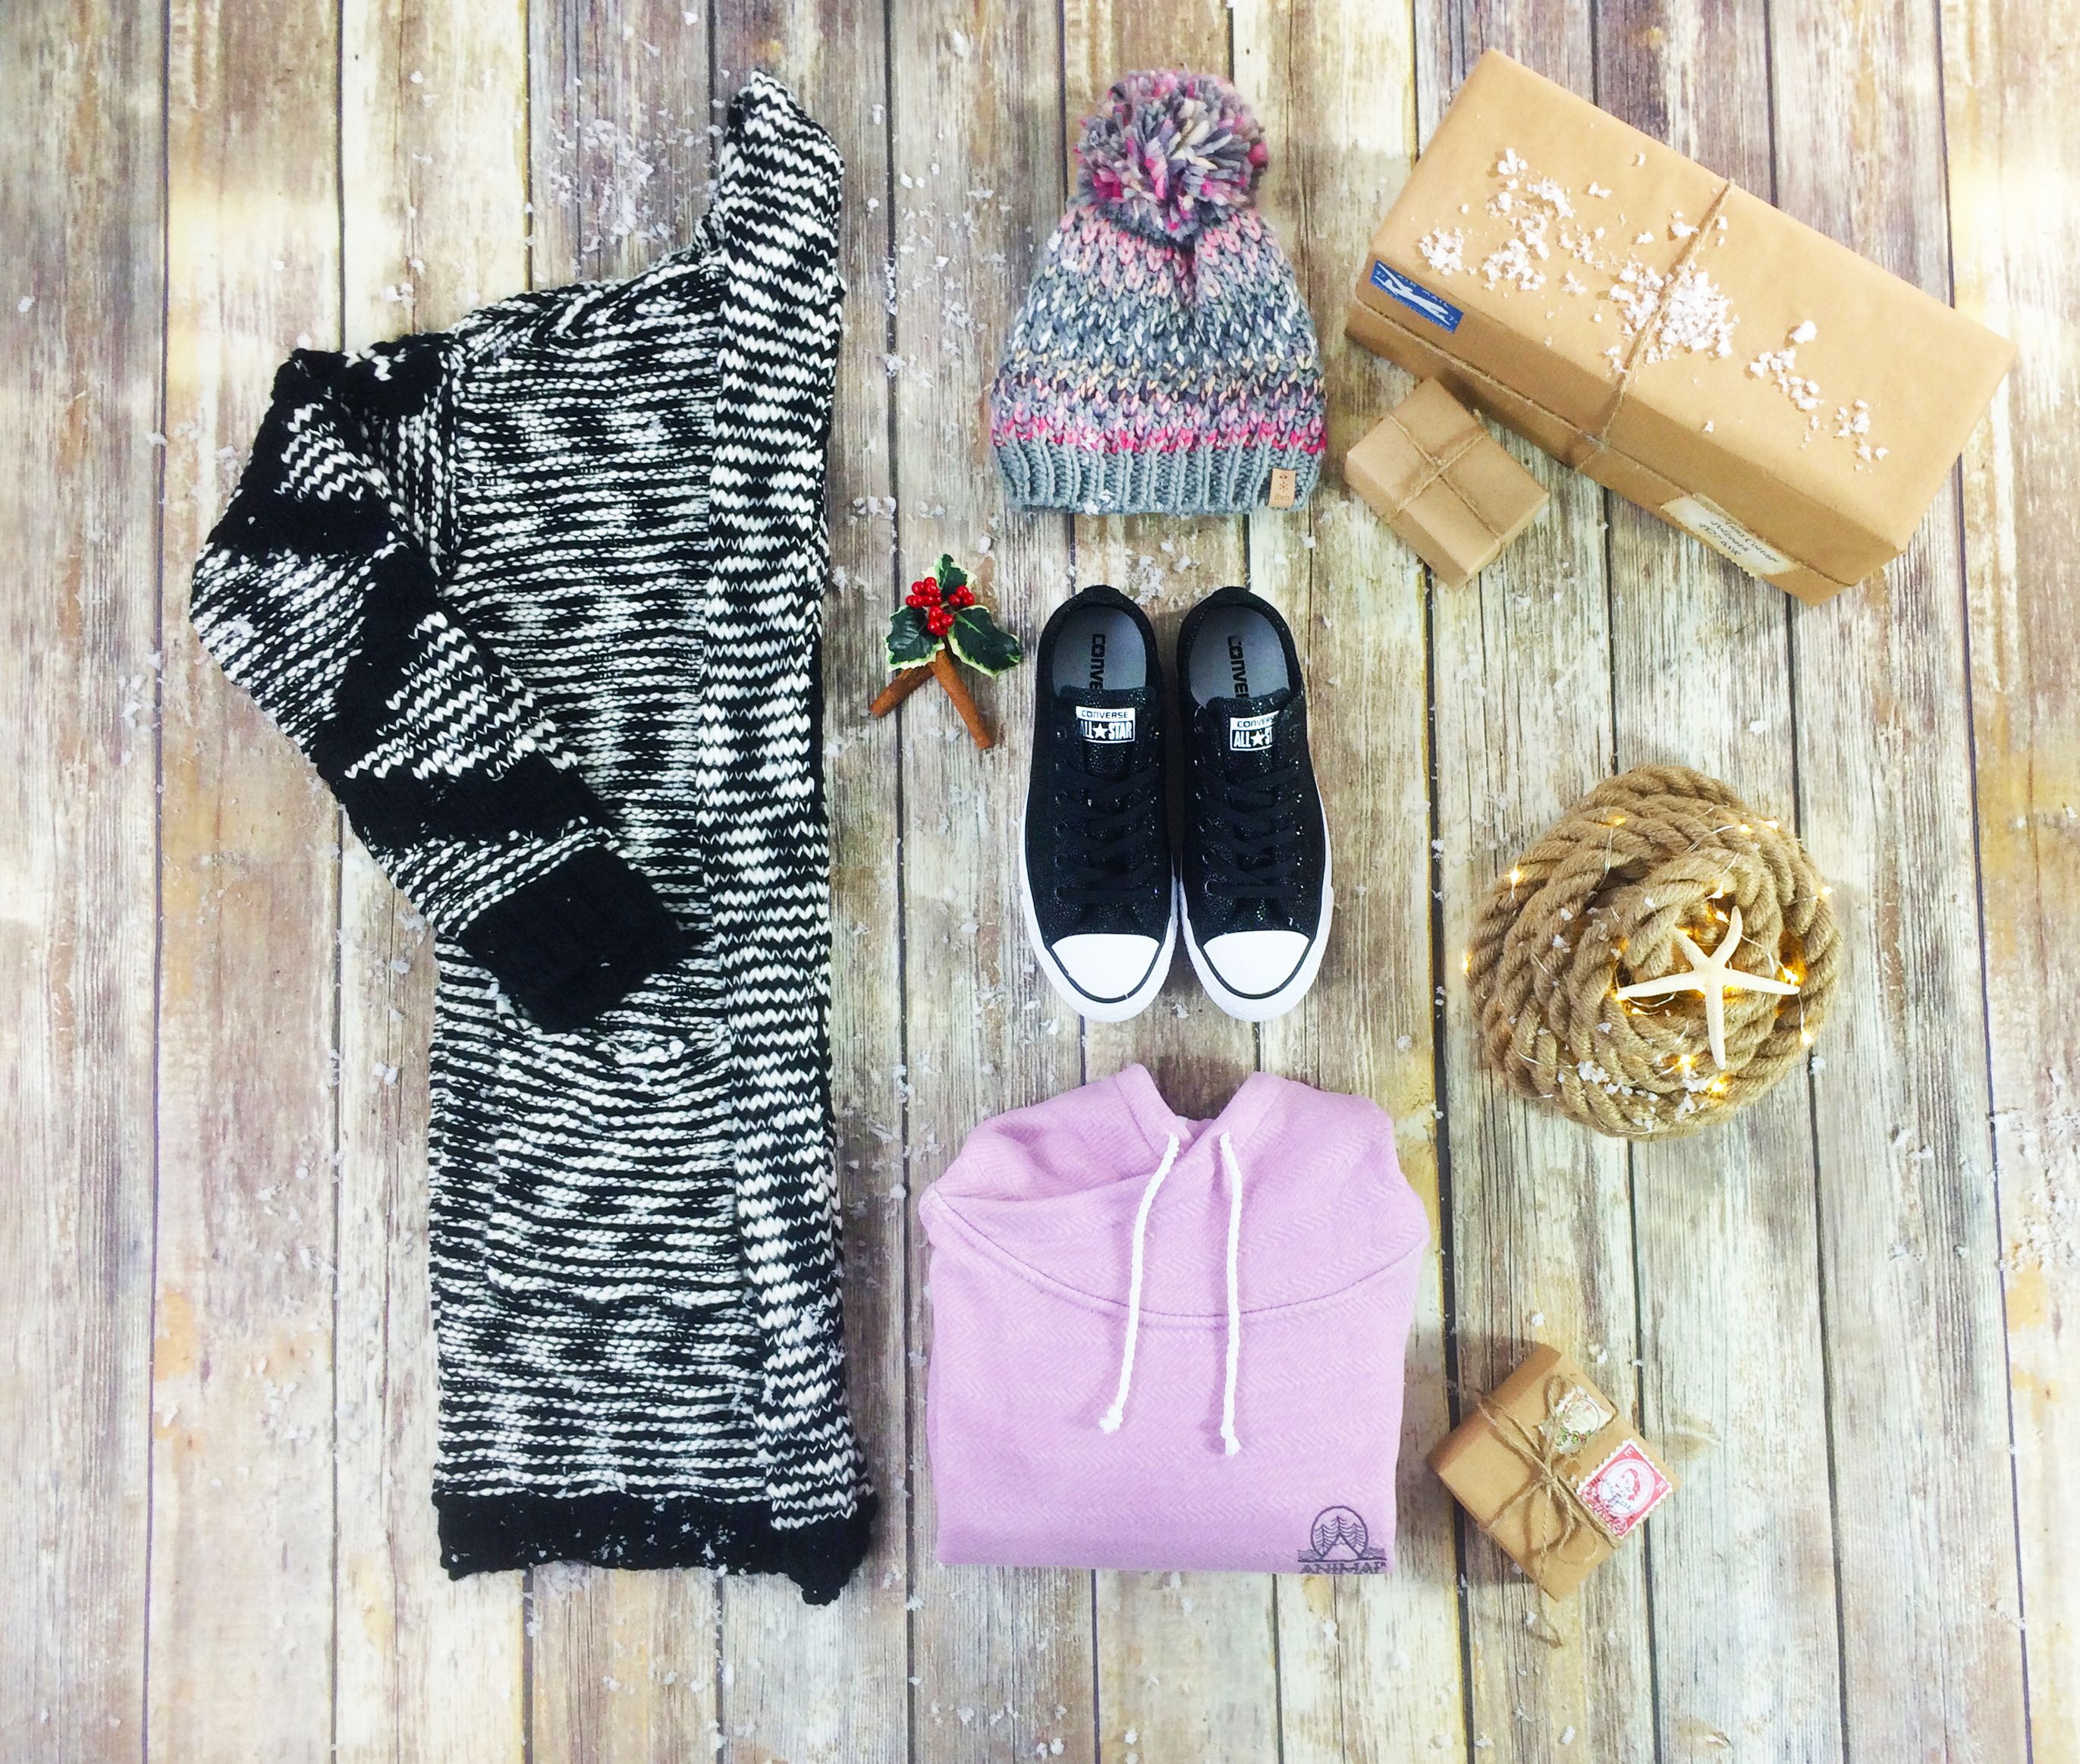 Finding it hard to think of the perfect gift...why not head over to our gift guides...we have it covered!  #AnnsCottage #Gift #Ideas #Covered #Animal #Barts #Billabong #Converse #Roxy